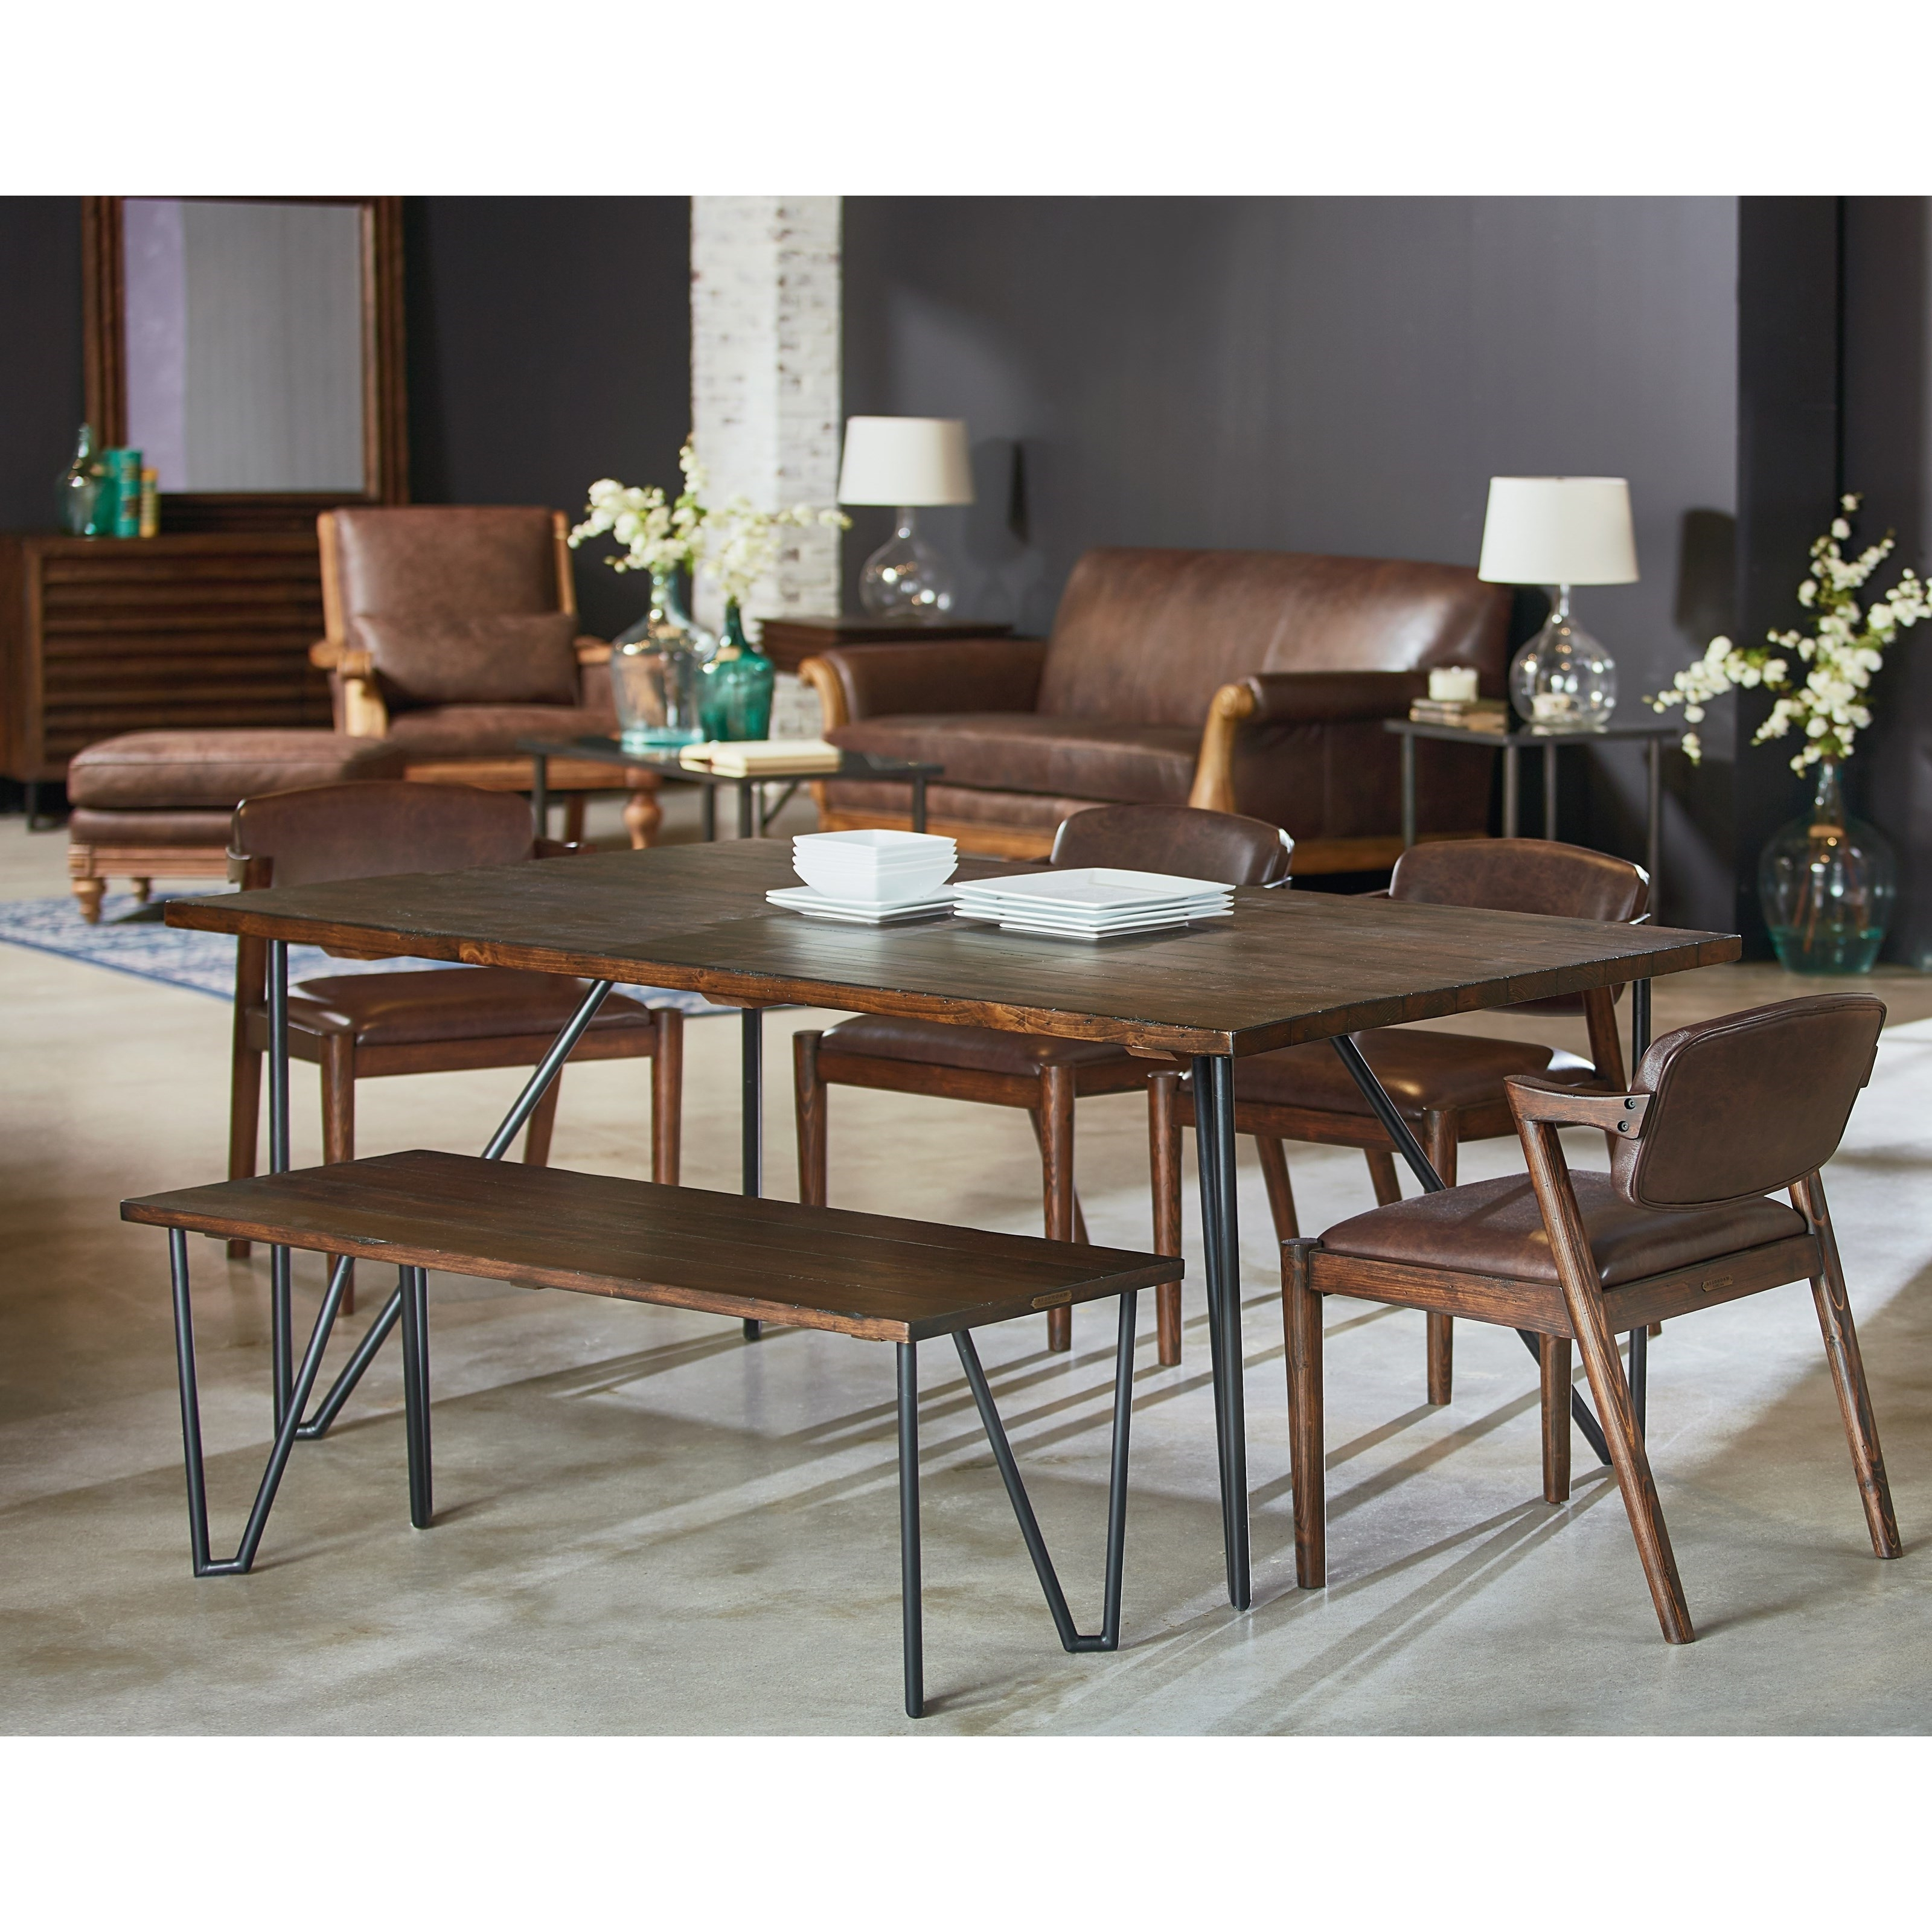 Most Popular Magnolia Home Entwine Rattan Side Chairs Inside 6 Piece Table And Chair Set With Bench And Metal Hairpin Legs (View 10 of 20)